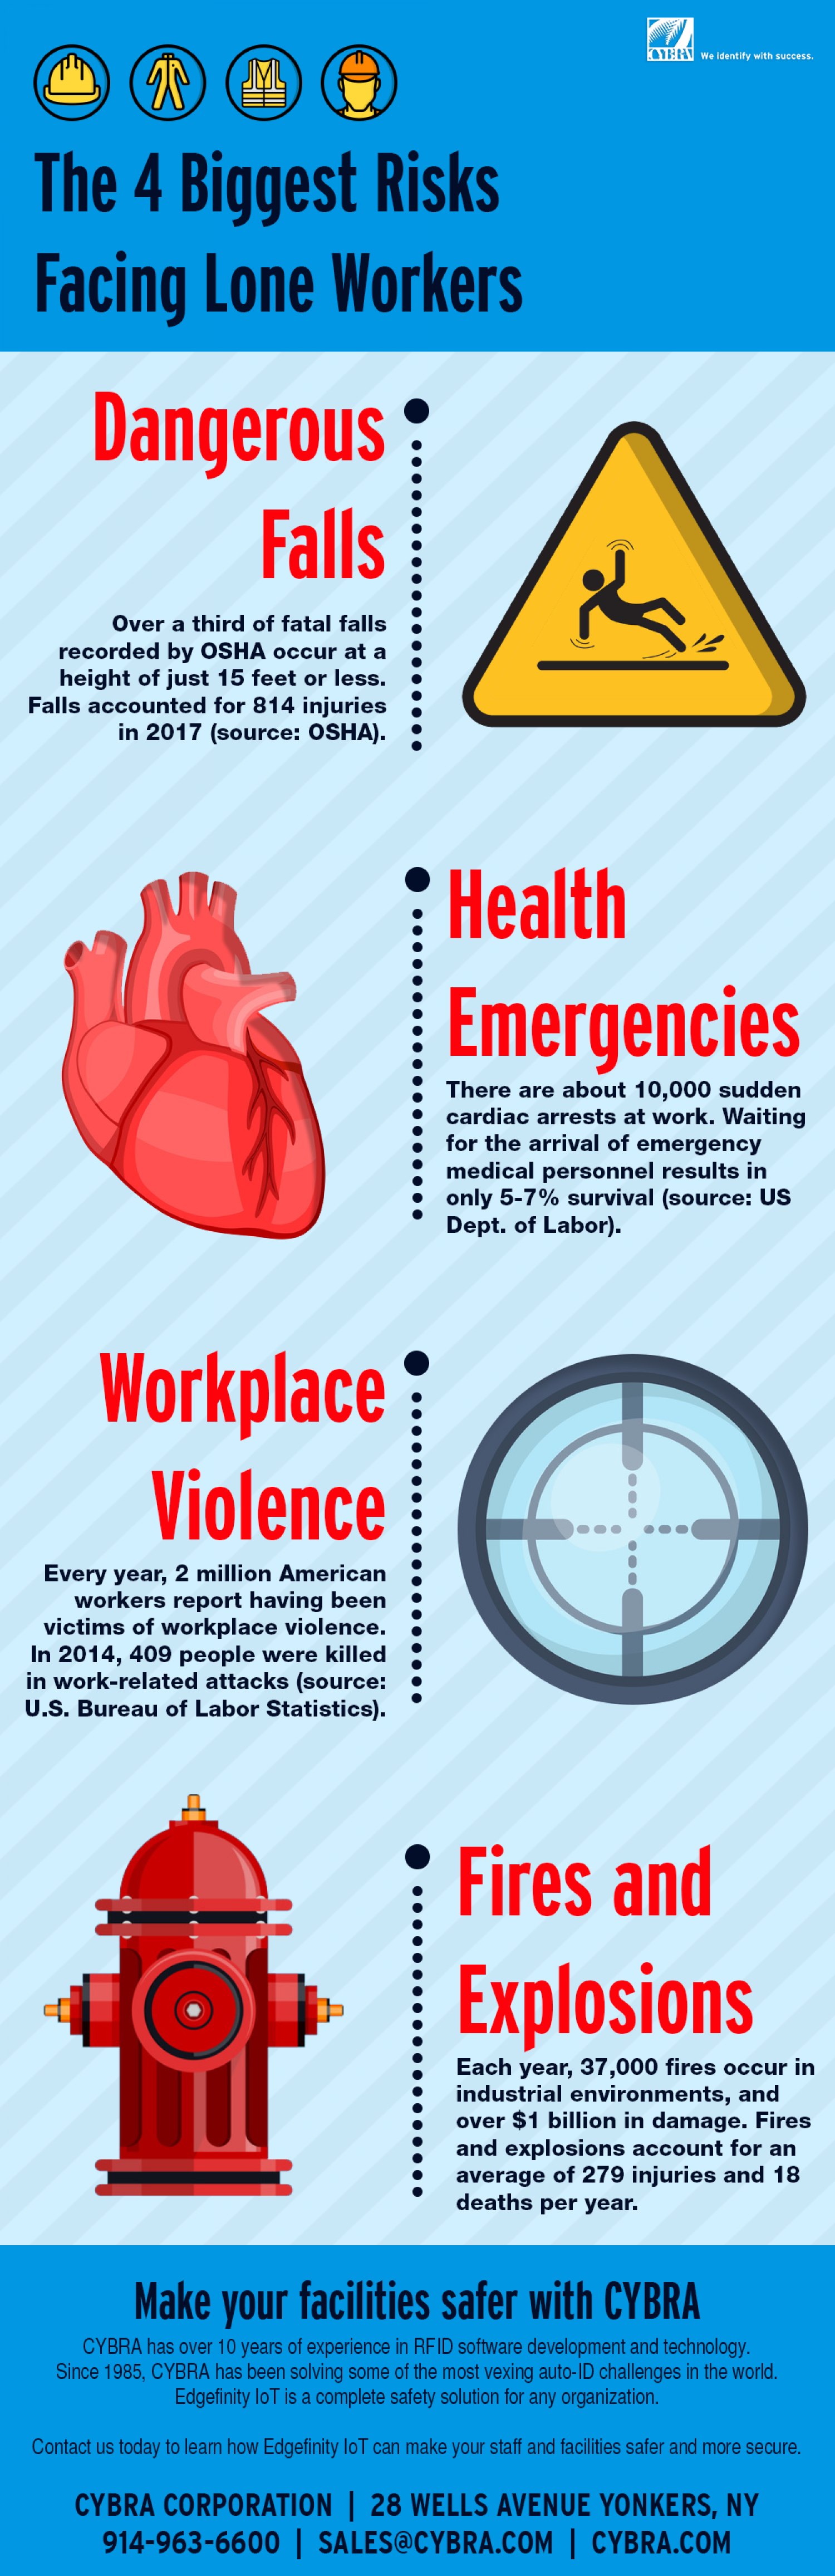 The 4 Biggest Risks Facing Lone Workers Infographic